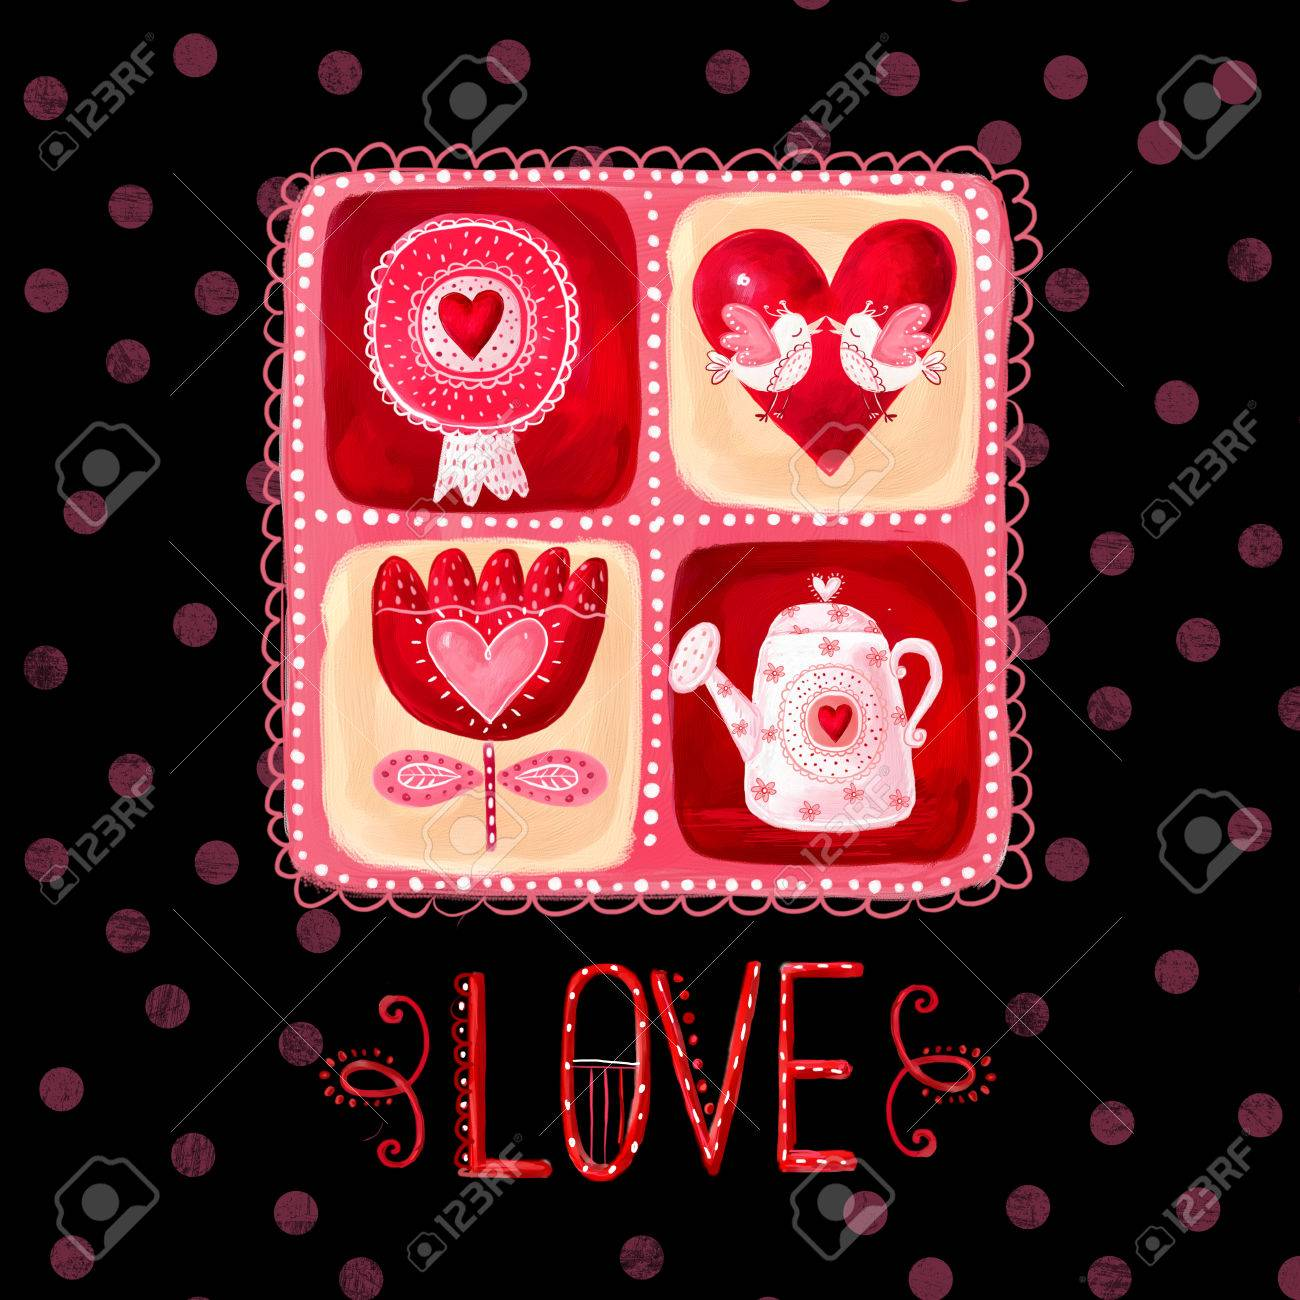 Love Greeting Card Design Elementve The Date Background Stock